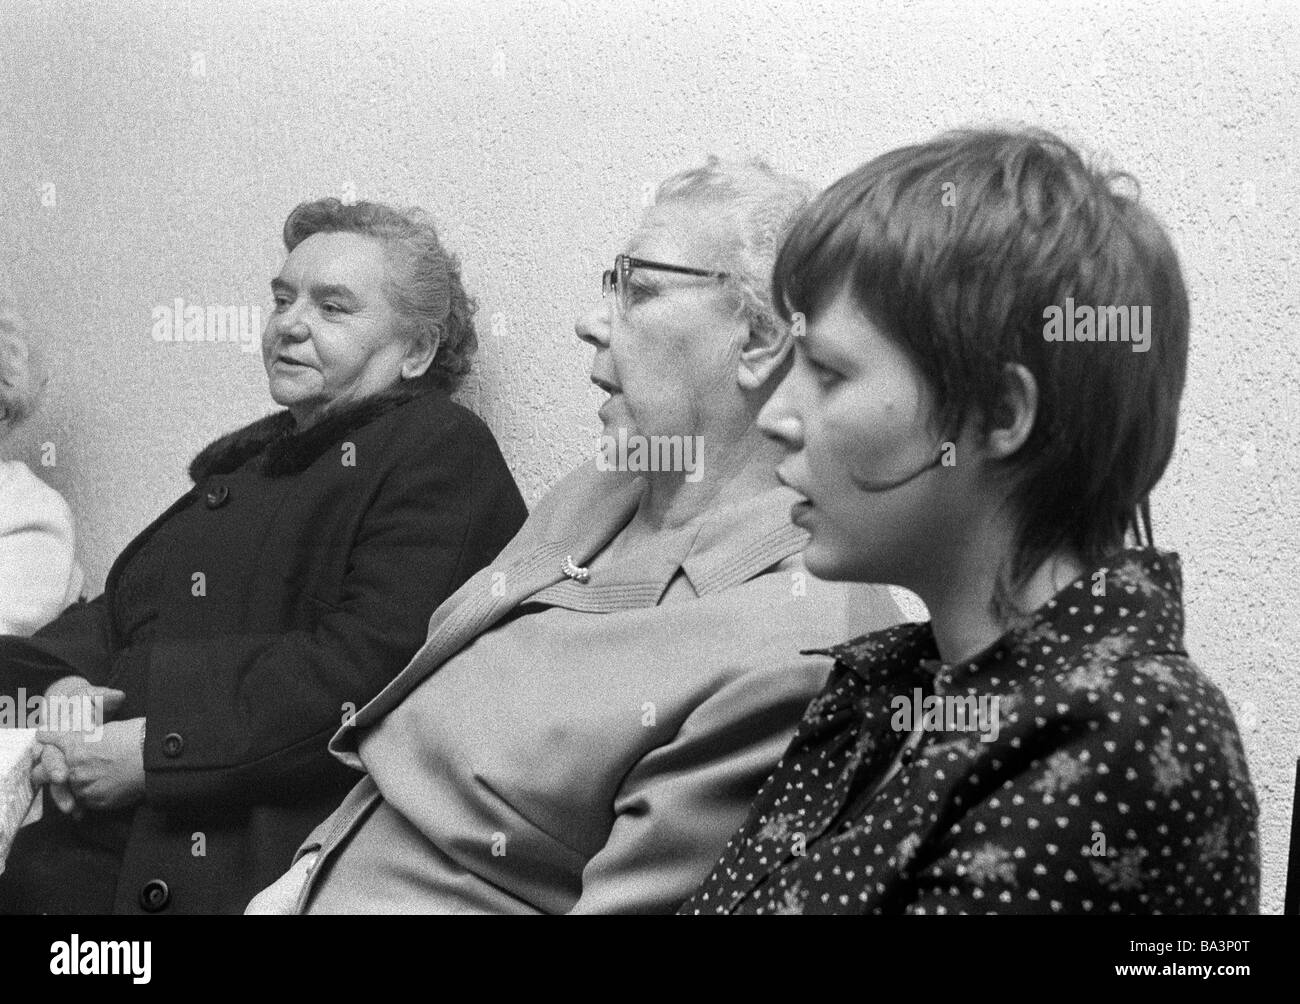 Seventies, black and white photo, people, two older women and a young woman sit together, aged 70 to 80 years, aged - Stock Image